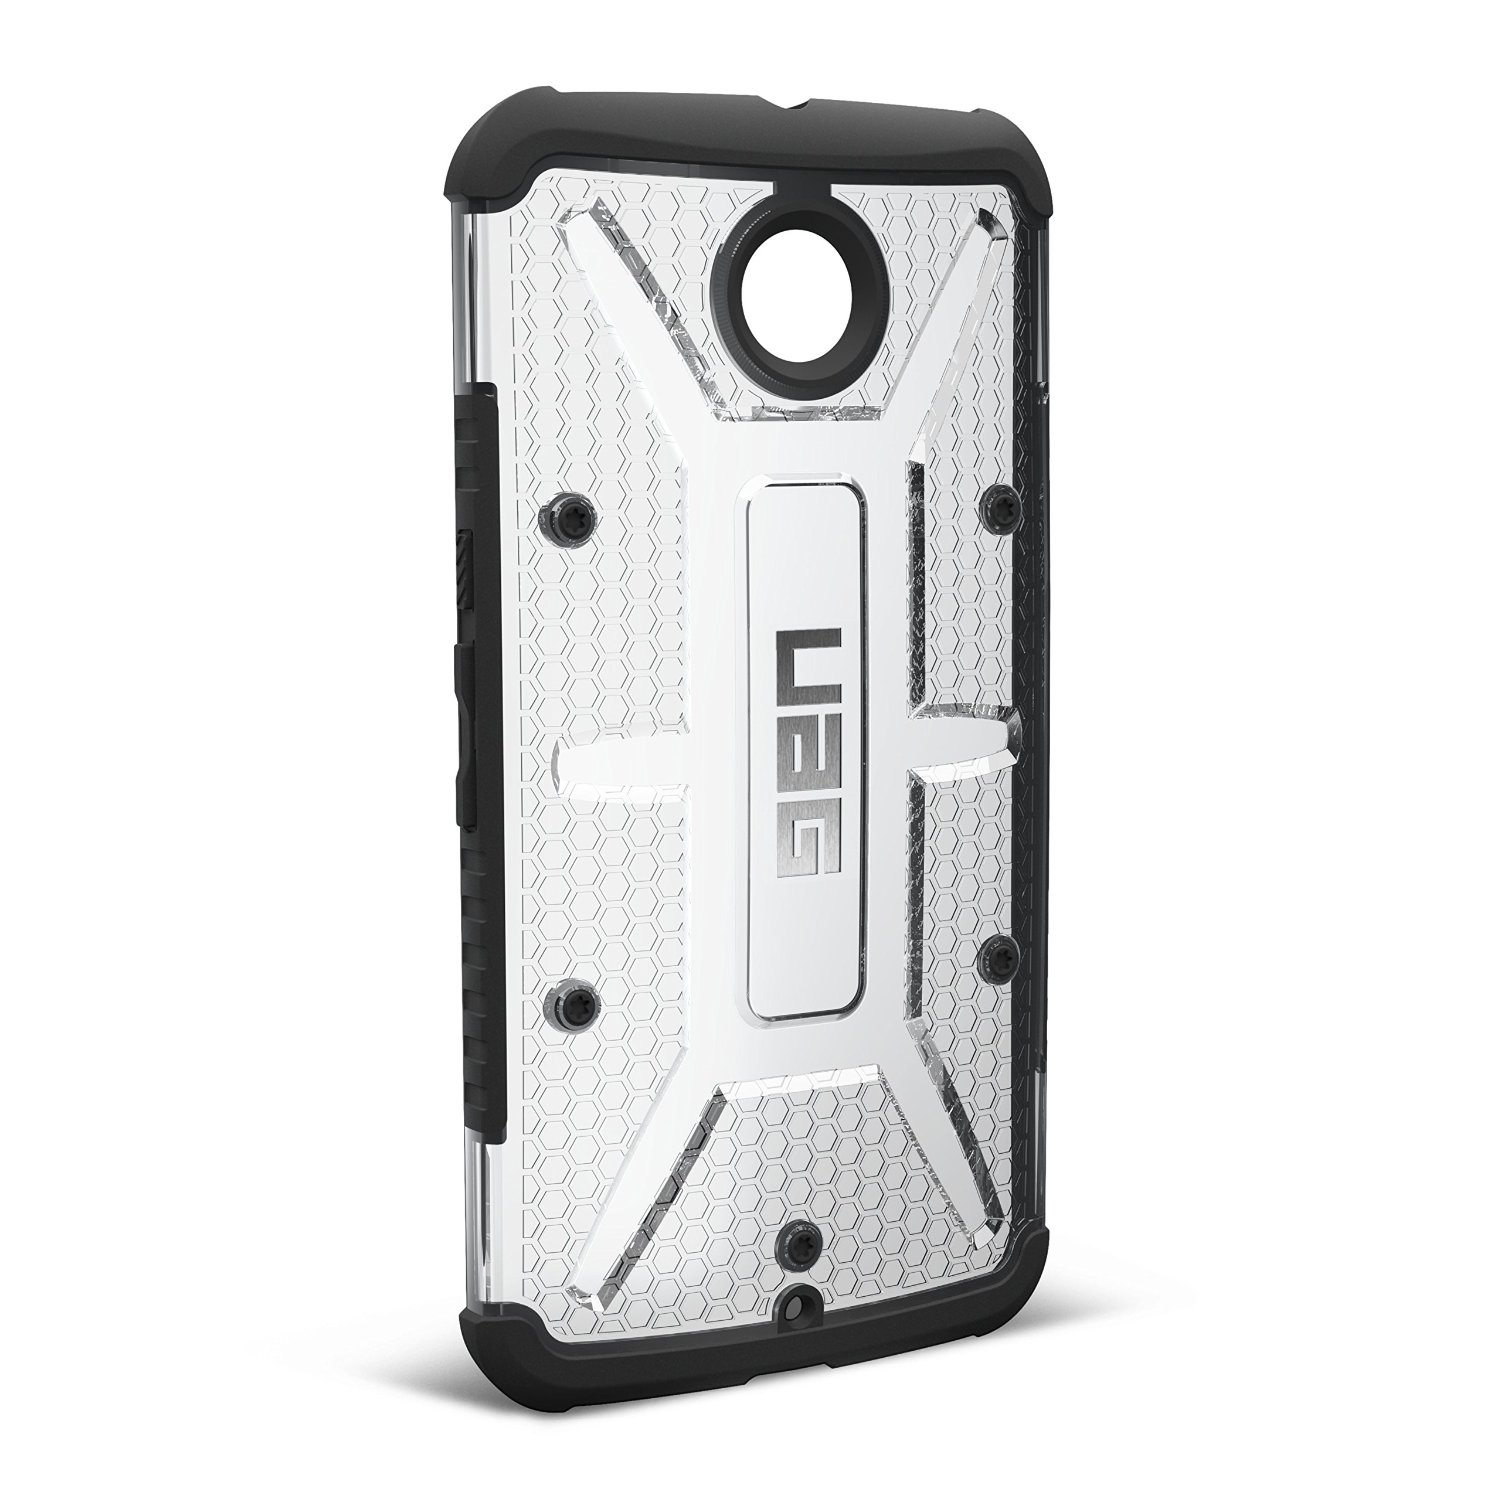 URBAN ARMOR GEAR Case for Motorola Nexus 6 - Clear